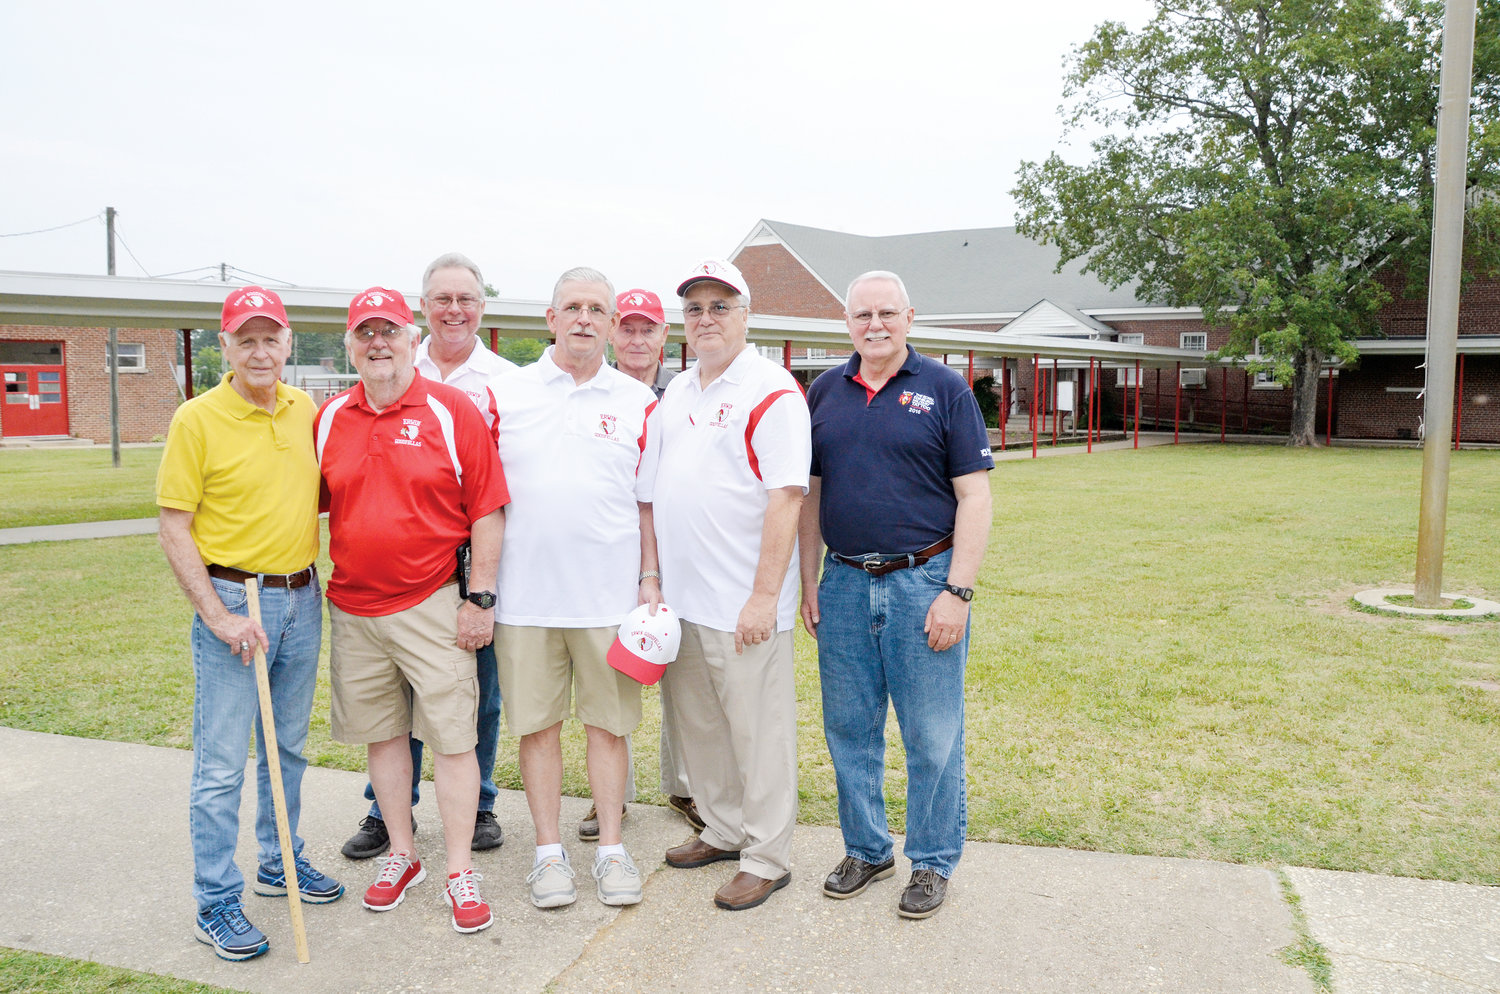 A group of Erwin High School alumni pose for a photo during the open house and final walk-through tour of Erwin Elementary School Thursday. Pictured, in front from left, Glenn Wade (class of '54), Jim Wade (class of '64), Ron Miriello (class of '64), Si Harrington III (class of '67) and Eddy Blackman (class of '72); back row, Dennis Avery (class of '82) and Tony Godwin (class of '66). The elementary school campus was the former location of the high school prior to the consolidation of Erwin, Coats and Dunn High Schools, forming Triton High School in 1985.